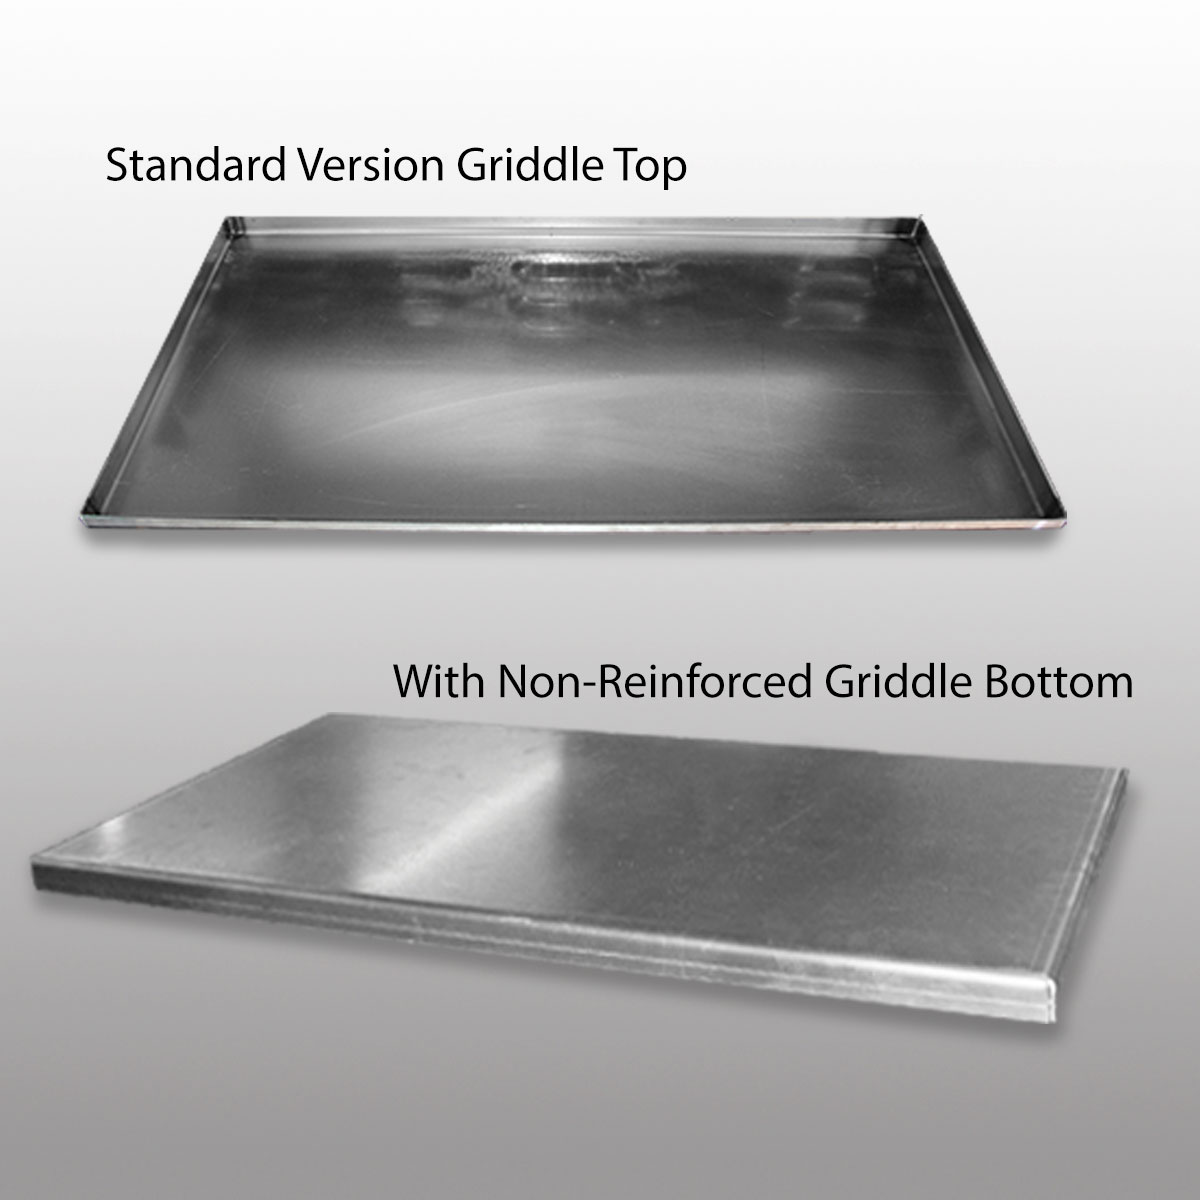 Griddle Top For All Grills